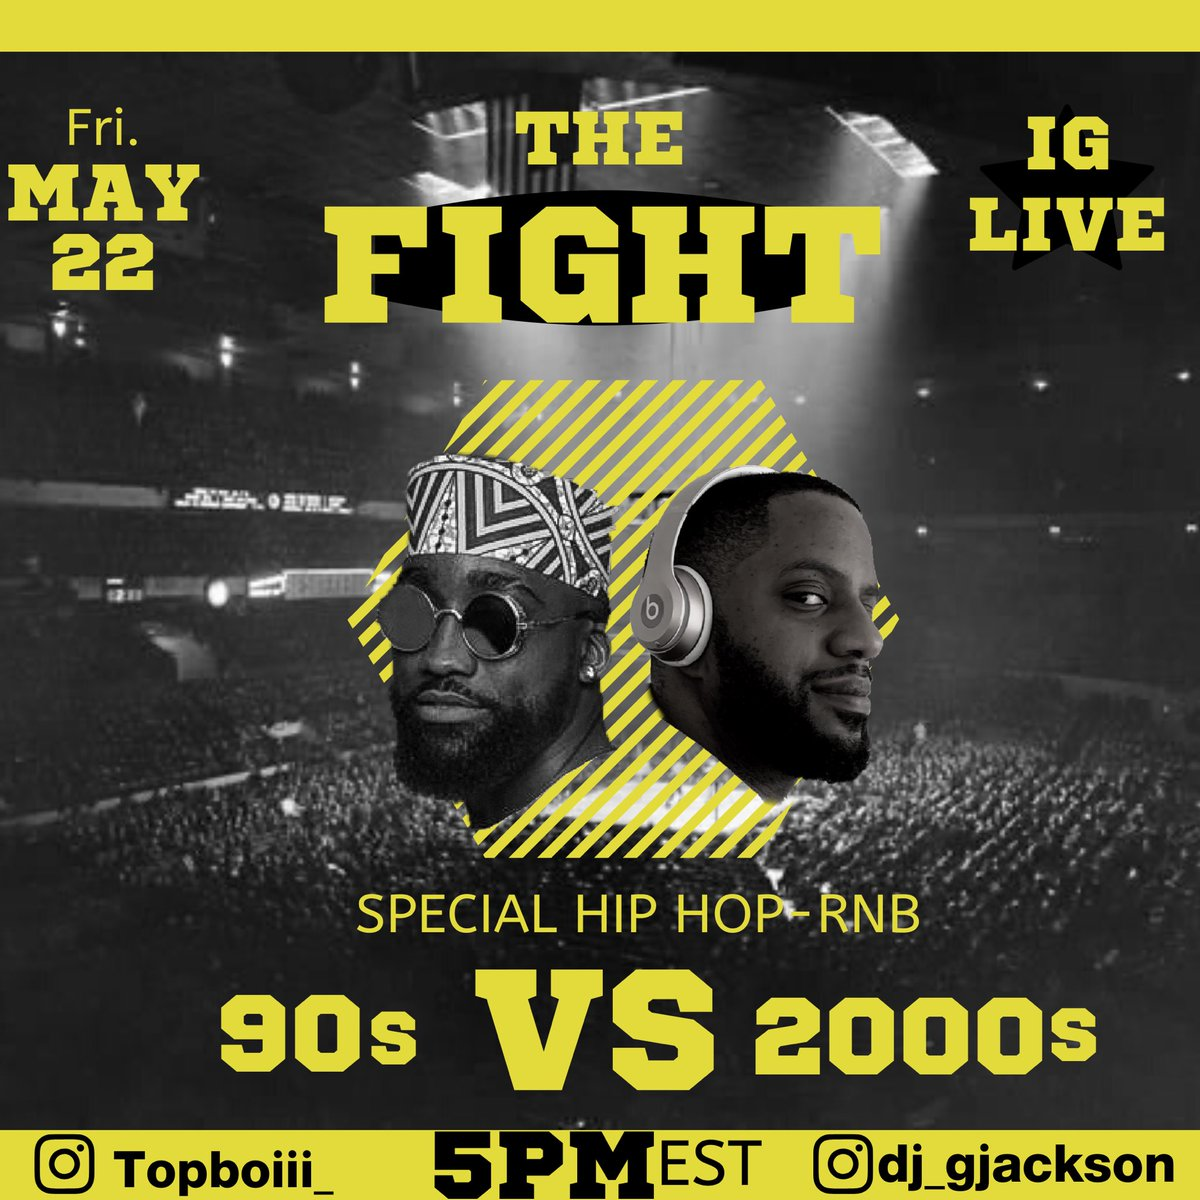 Tune in today! #hiphop #rnb 90s vs 2000s #thefight pic.twitter.com/d59PXkMoVP